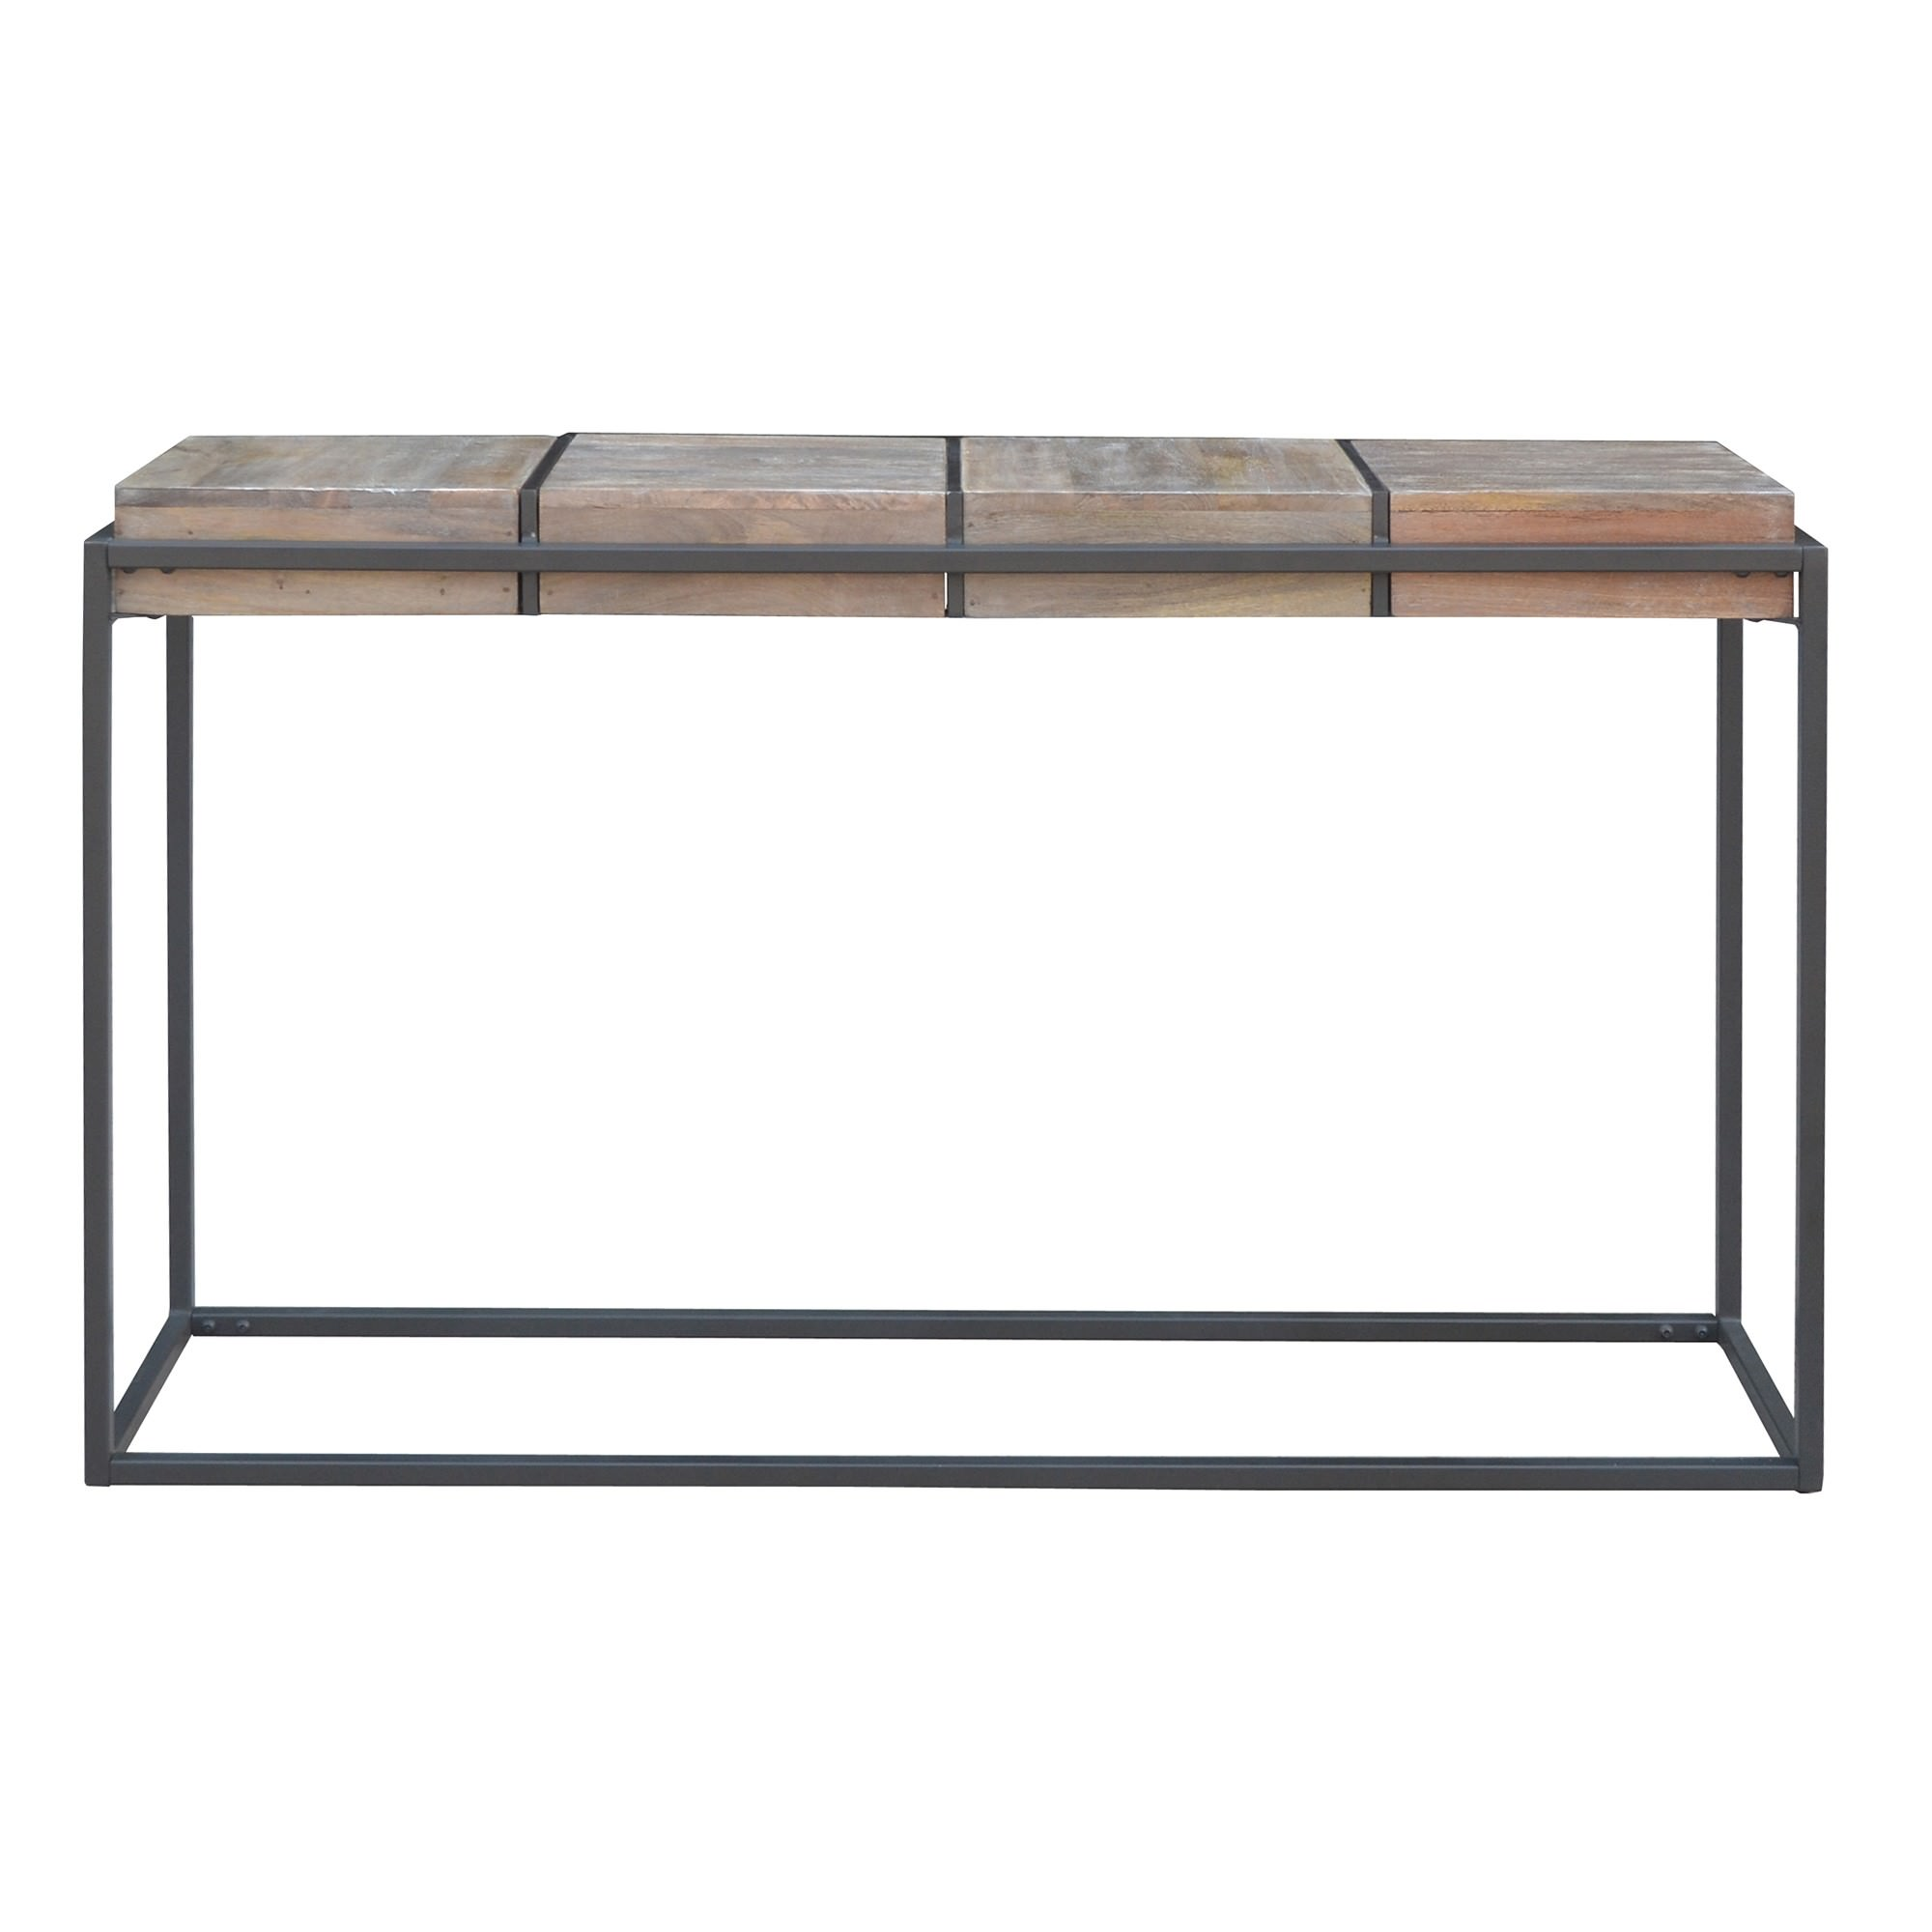 Ampuis Mango Wood & Metal Console Table, 135cm